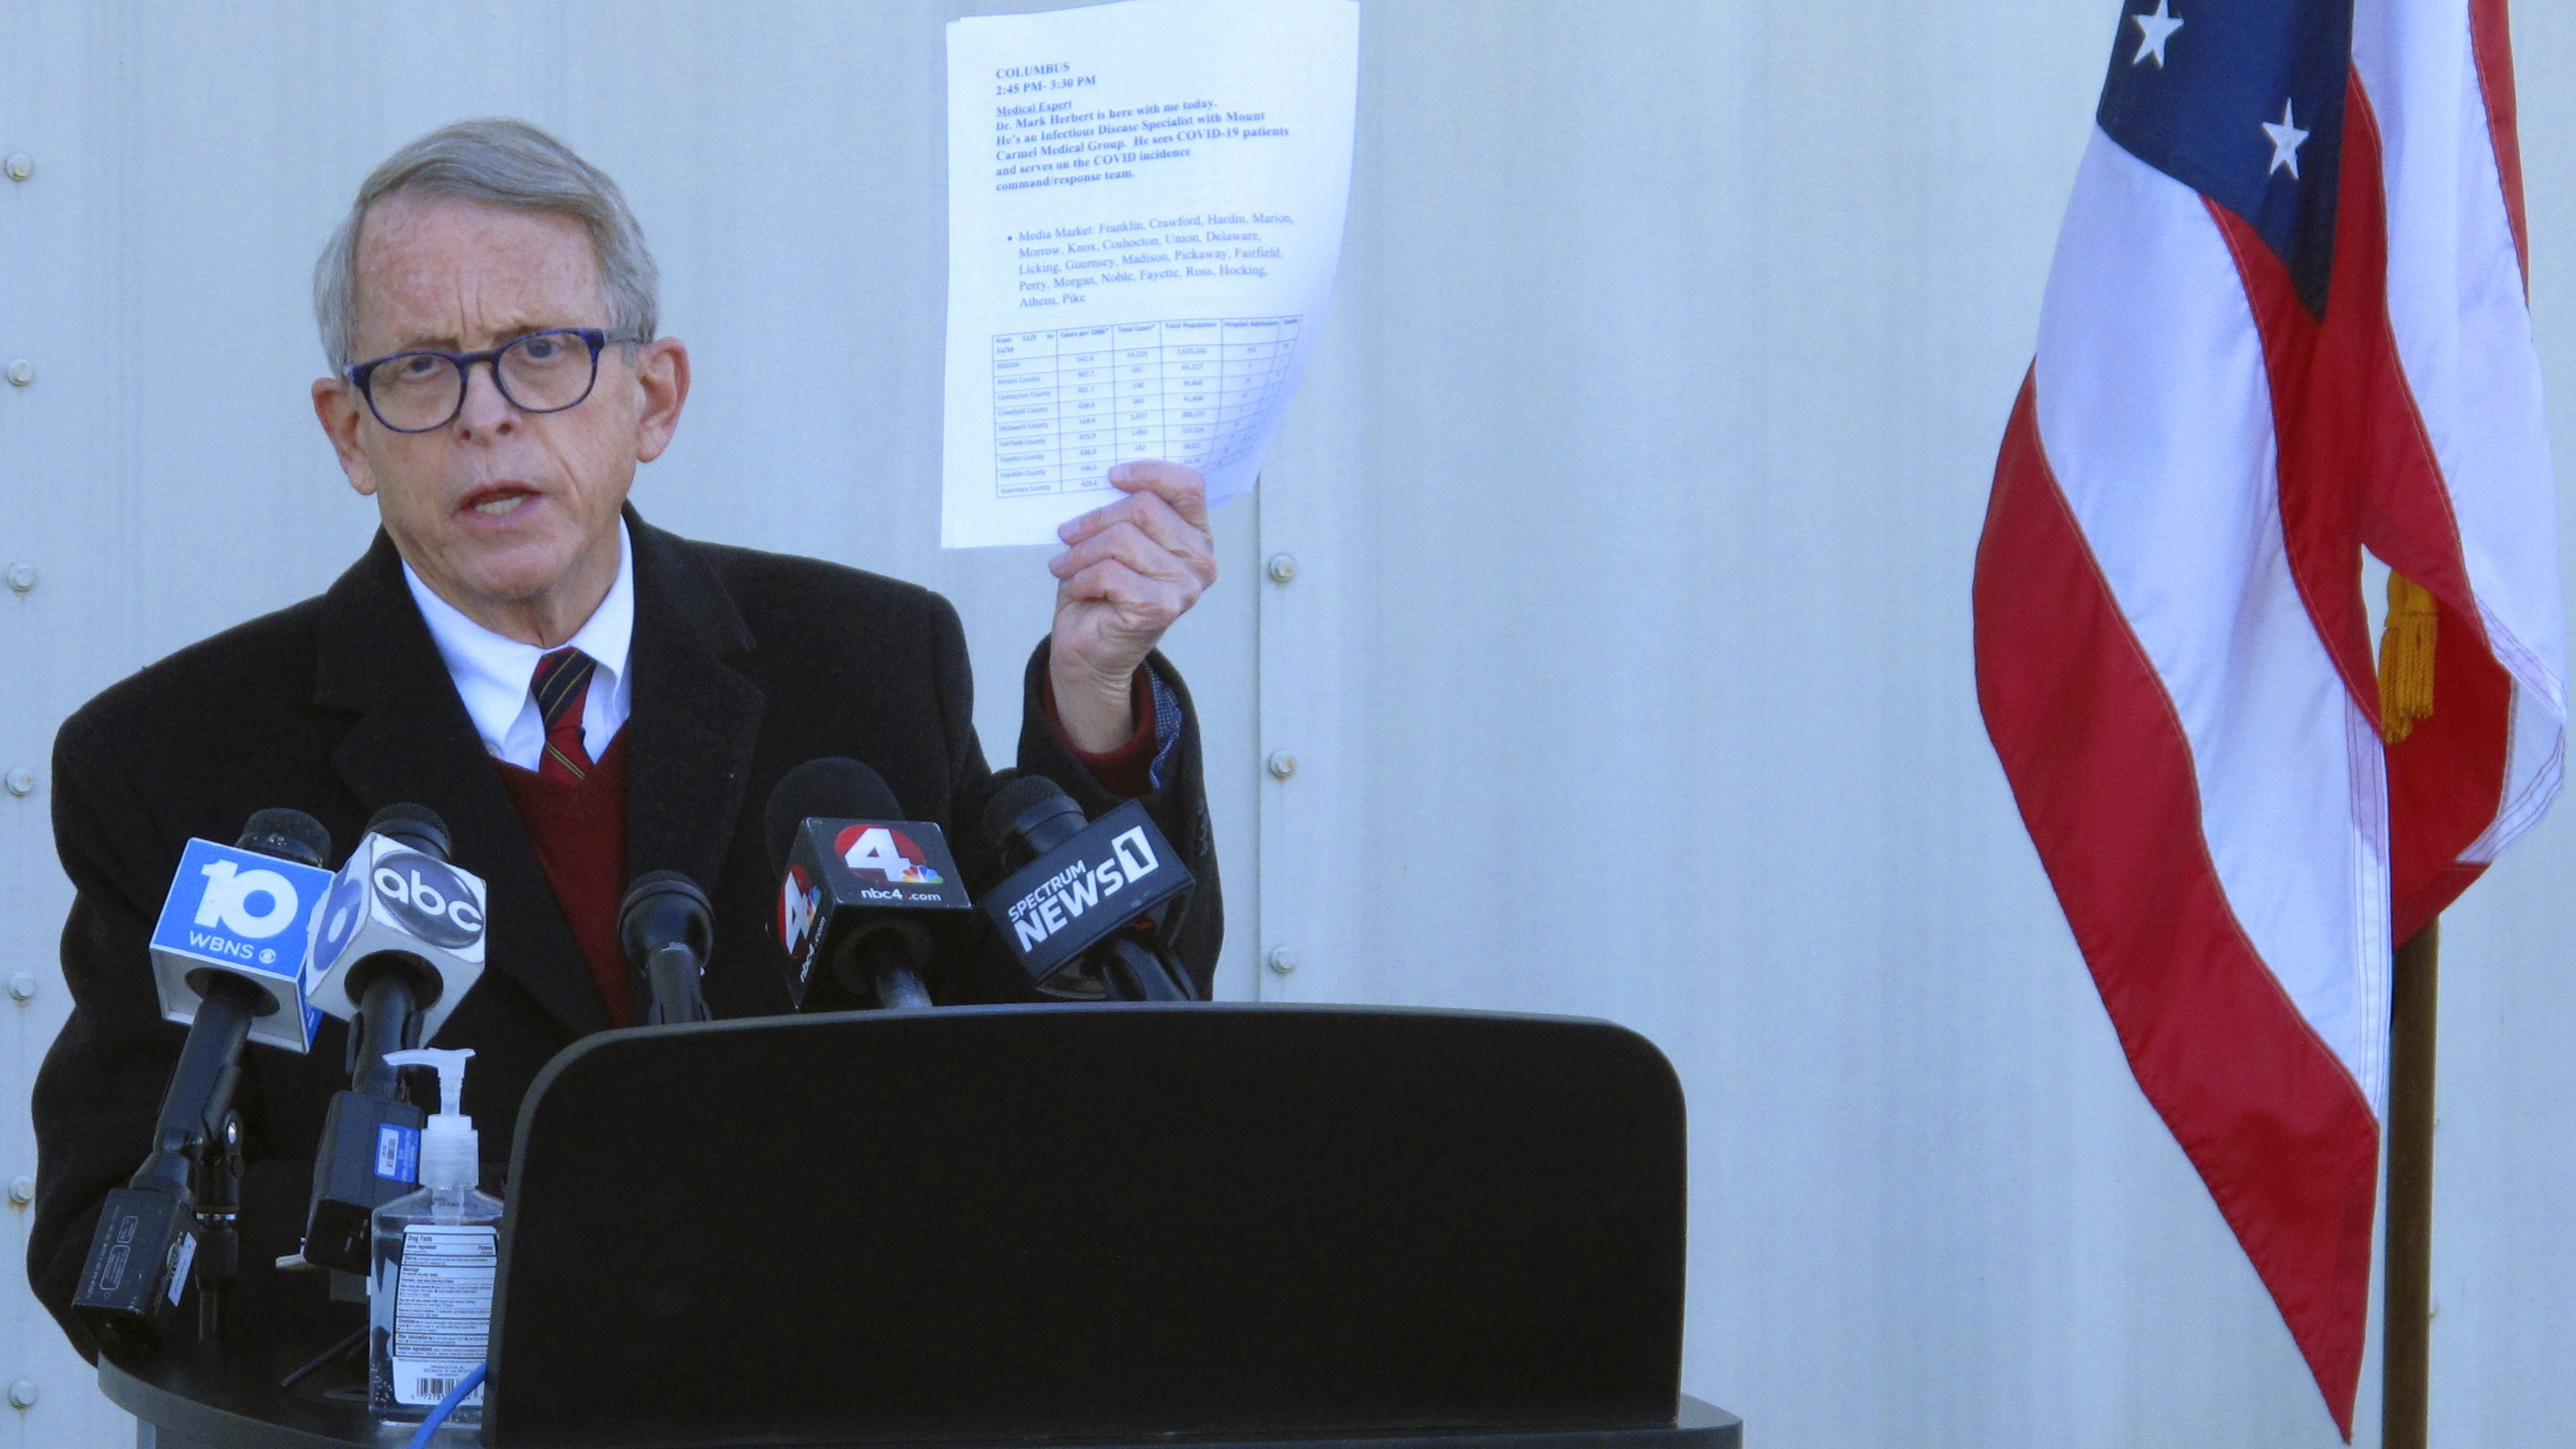 In this Nov. 18, 2020 file photo, Republican Ohio Gov. Mike DeWine discusses the most recent data on Ohio's soaring coronavirus cases during a news briefing at John Glenn International Airport in Columbus, Ohio.  DeWine is ready to address Ohioans in his fourth primetime speech about the state's progress against the coronavirus pandemic.  DeWine planned his address for late Wednesday, May 12, 2021.